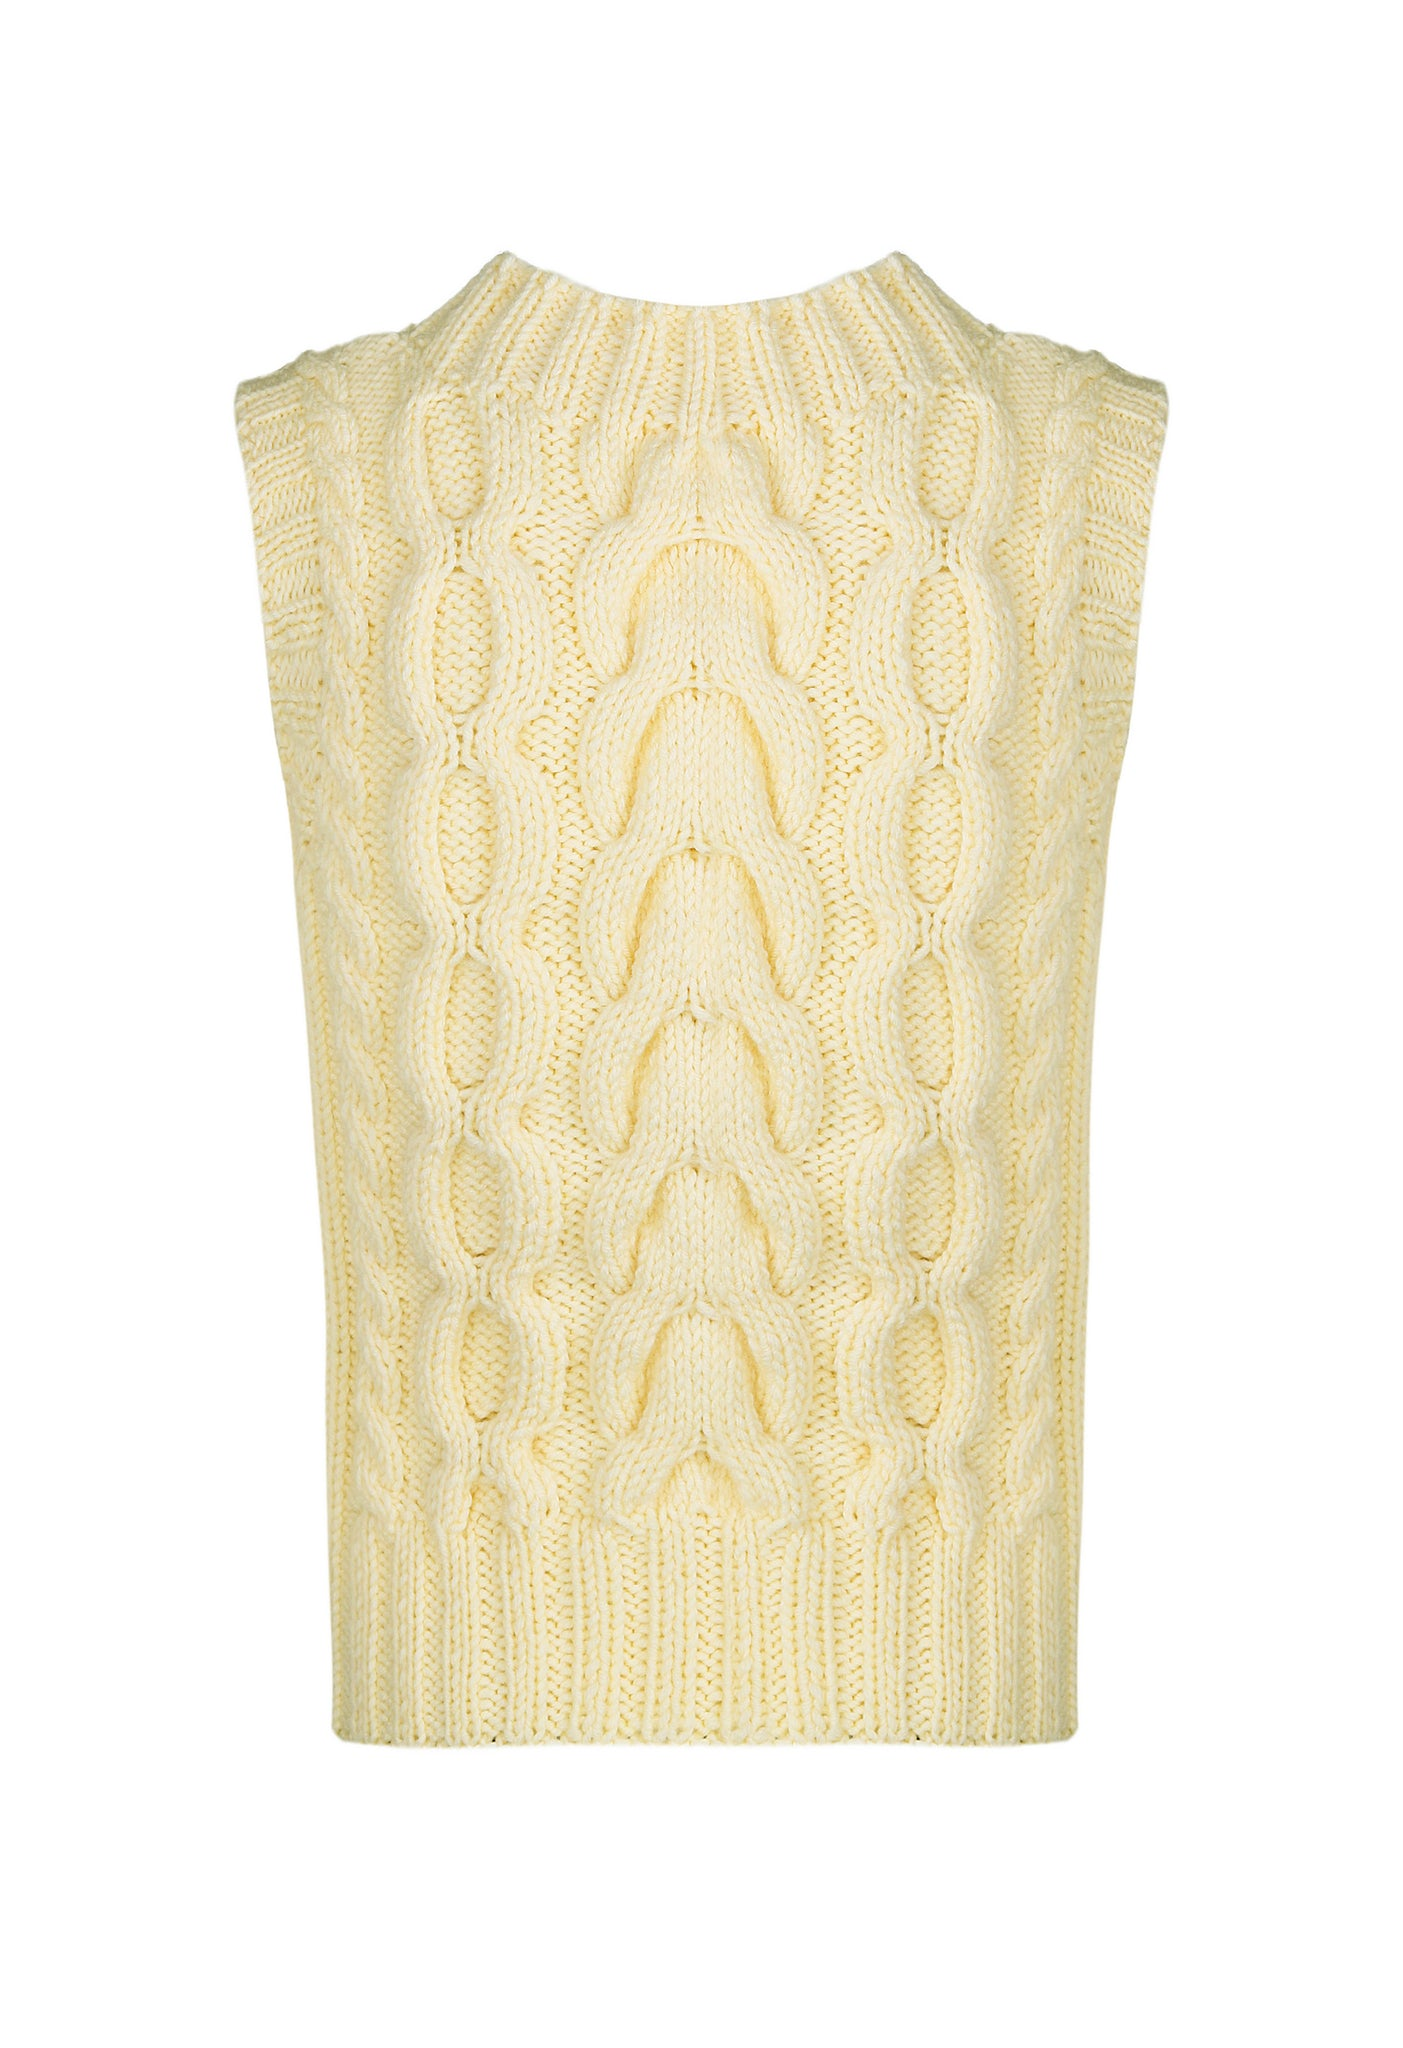 Cream hand knitted vest, back view